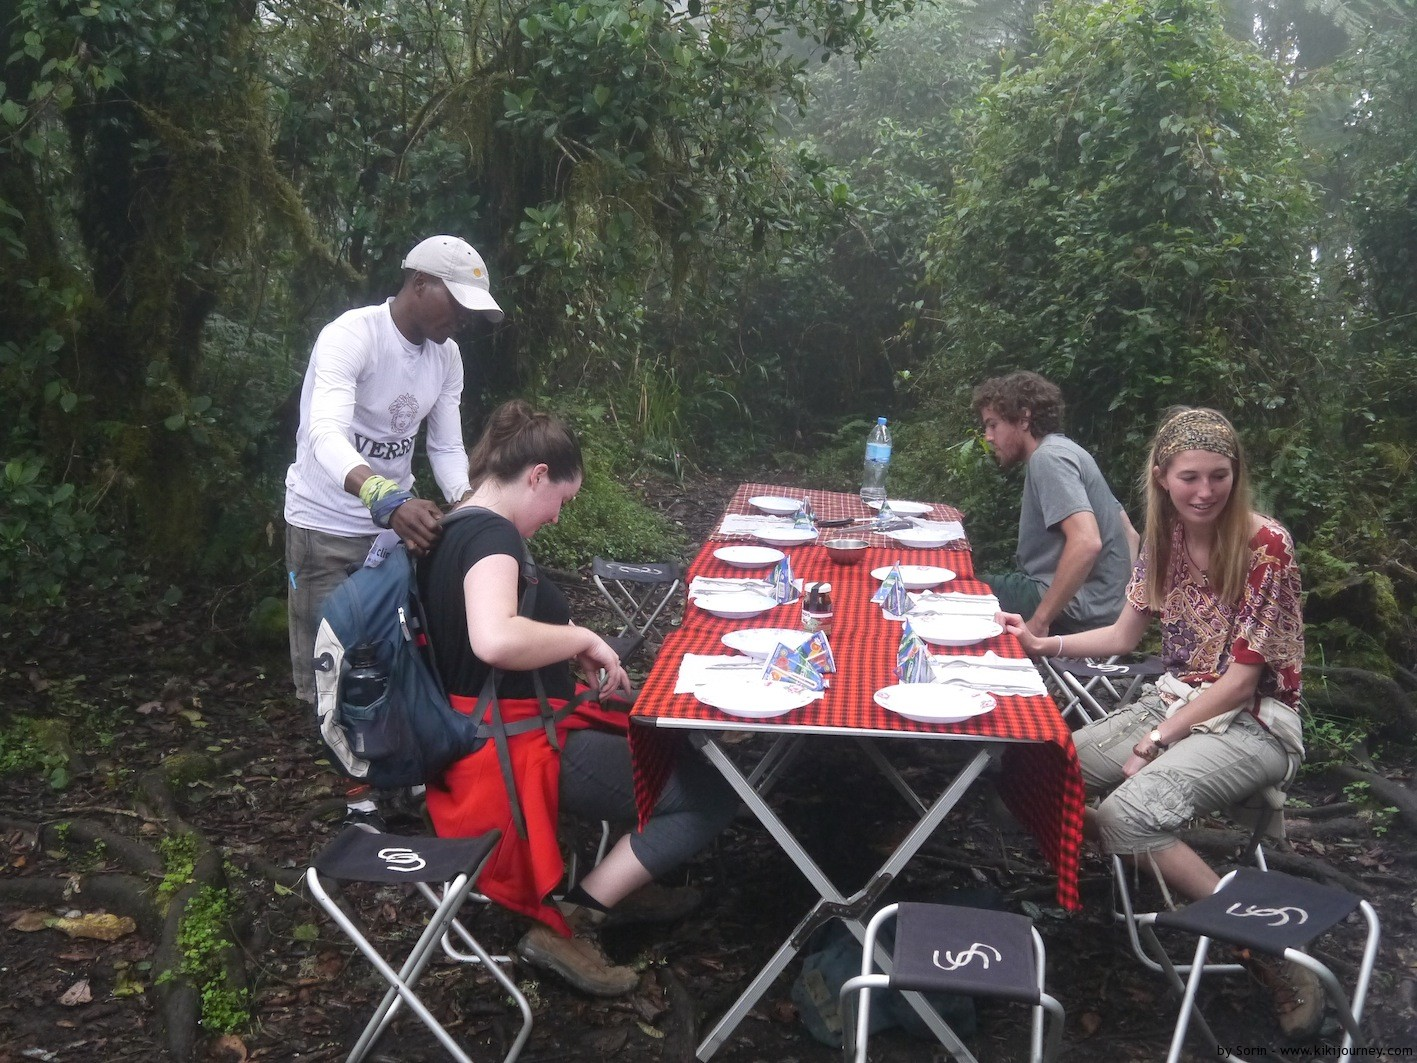 Lunch Break Kilimanjaro